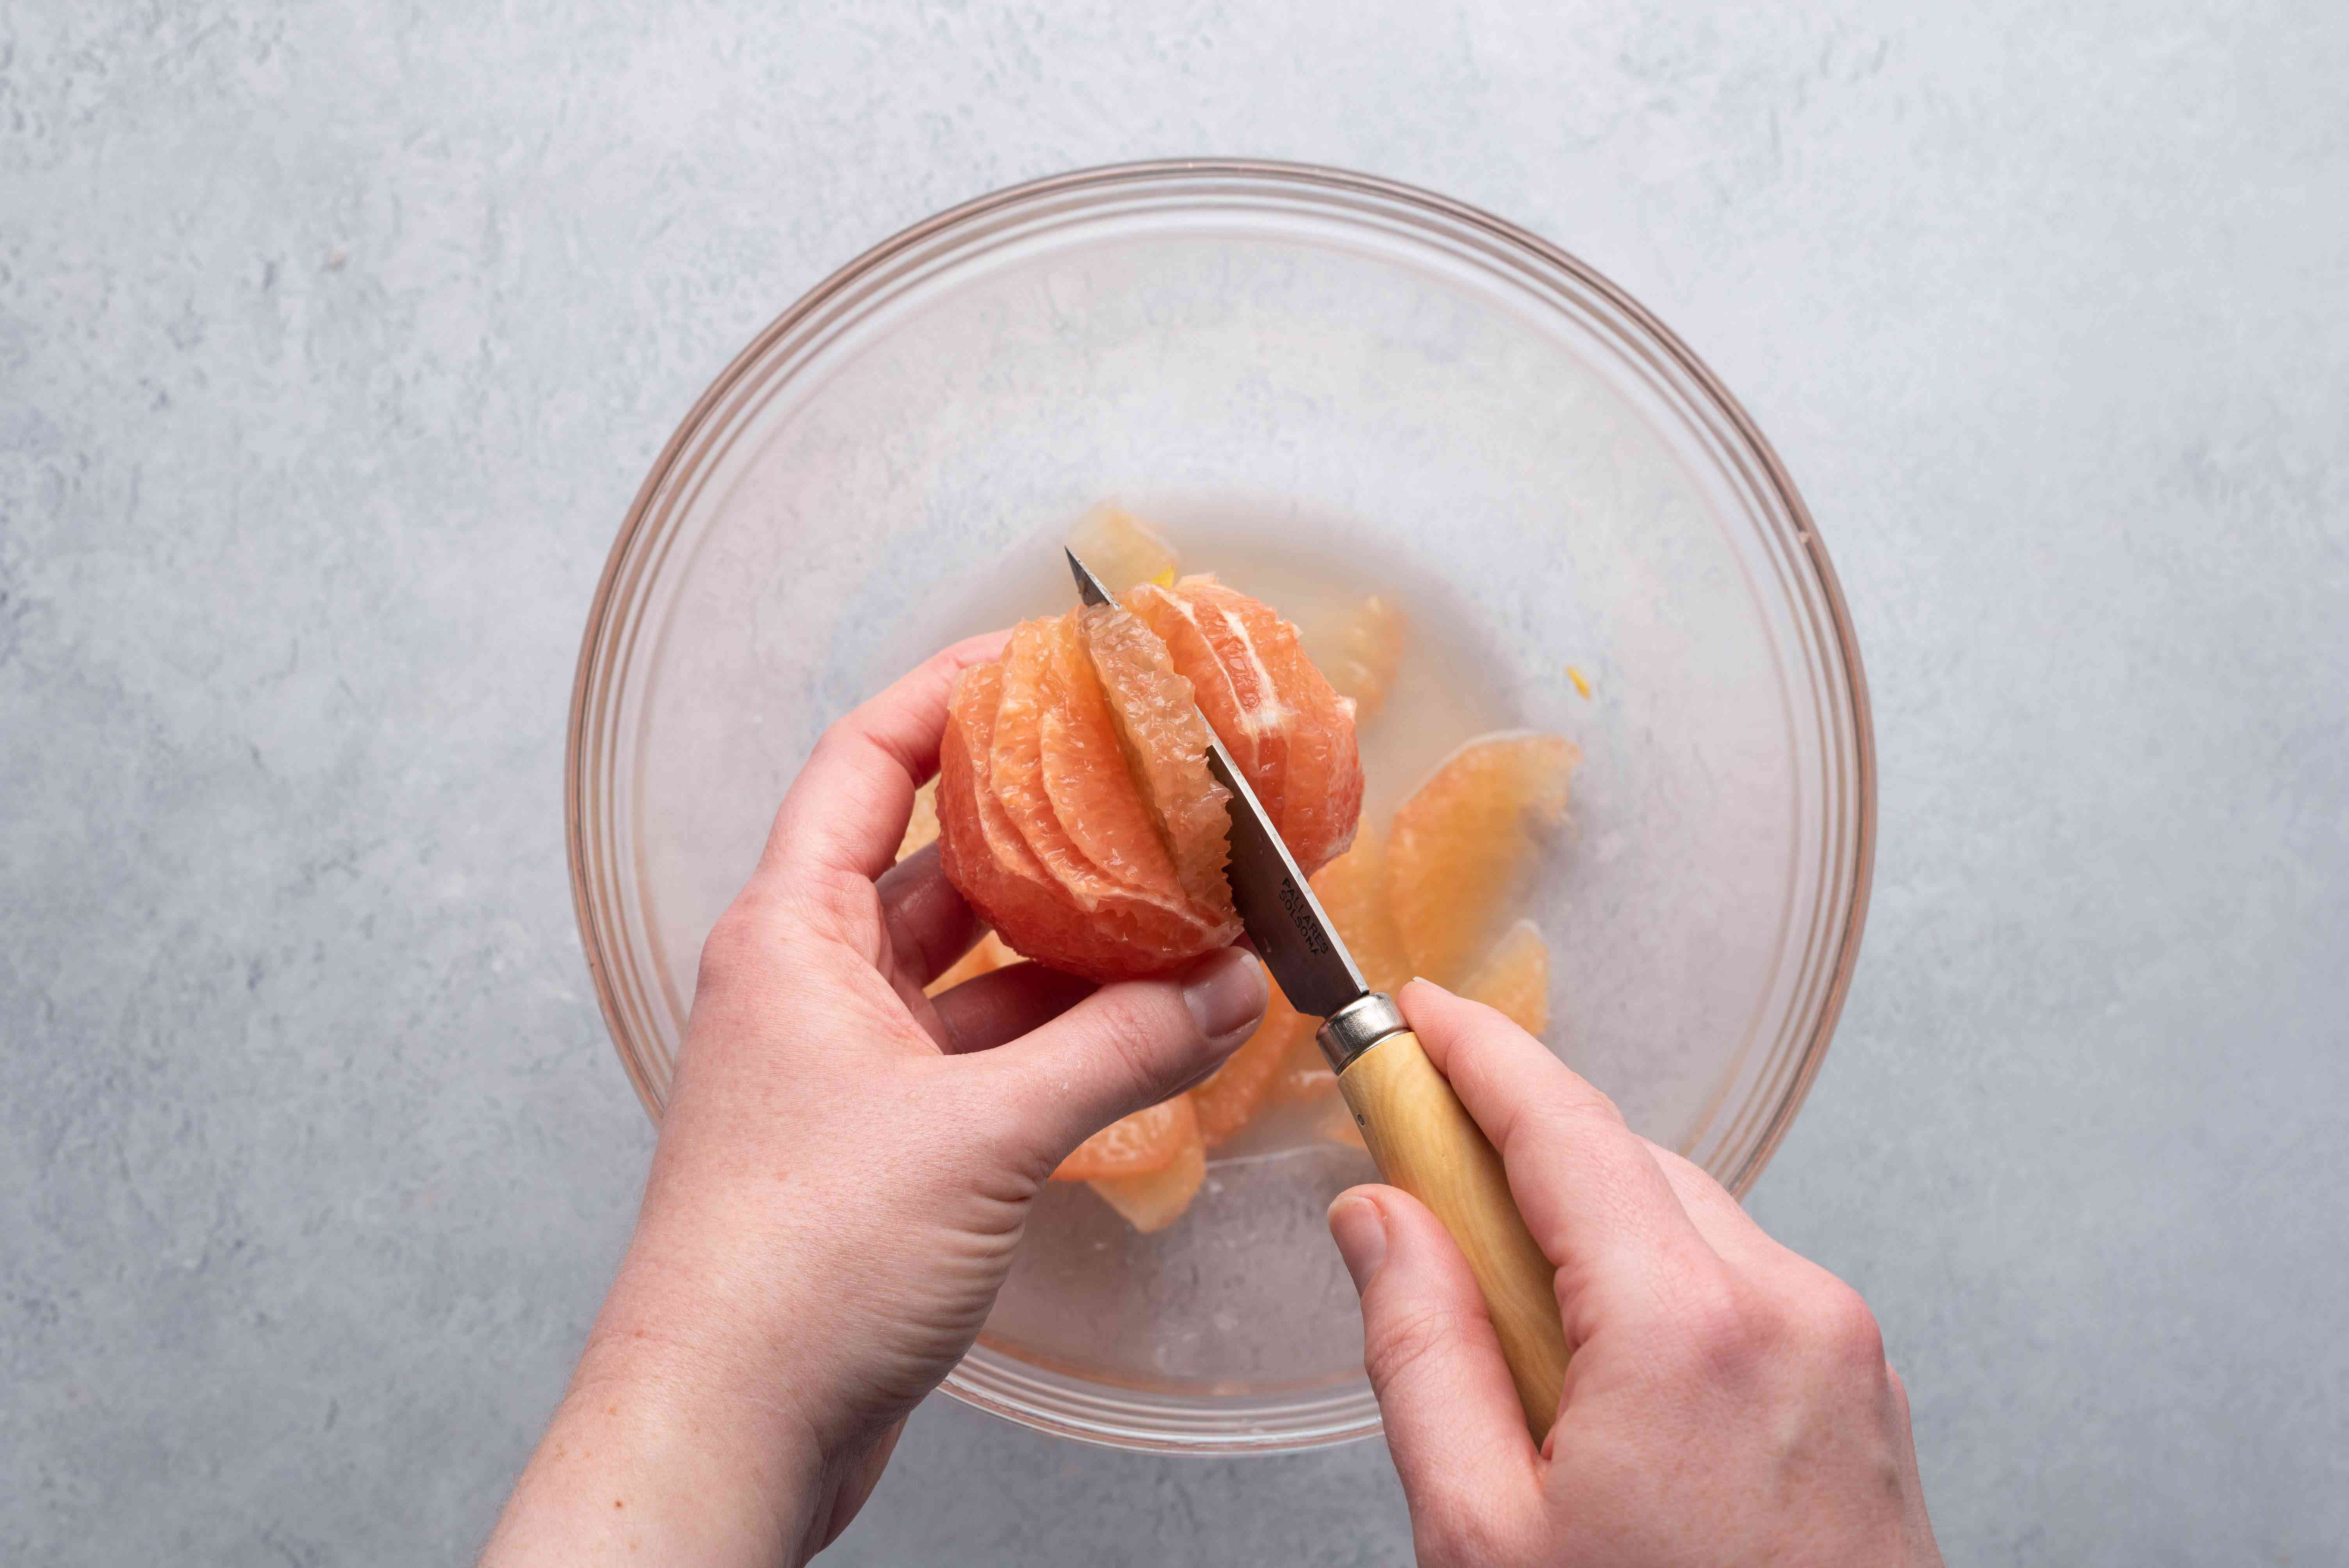 cut out grapefruit sections into a bowl